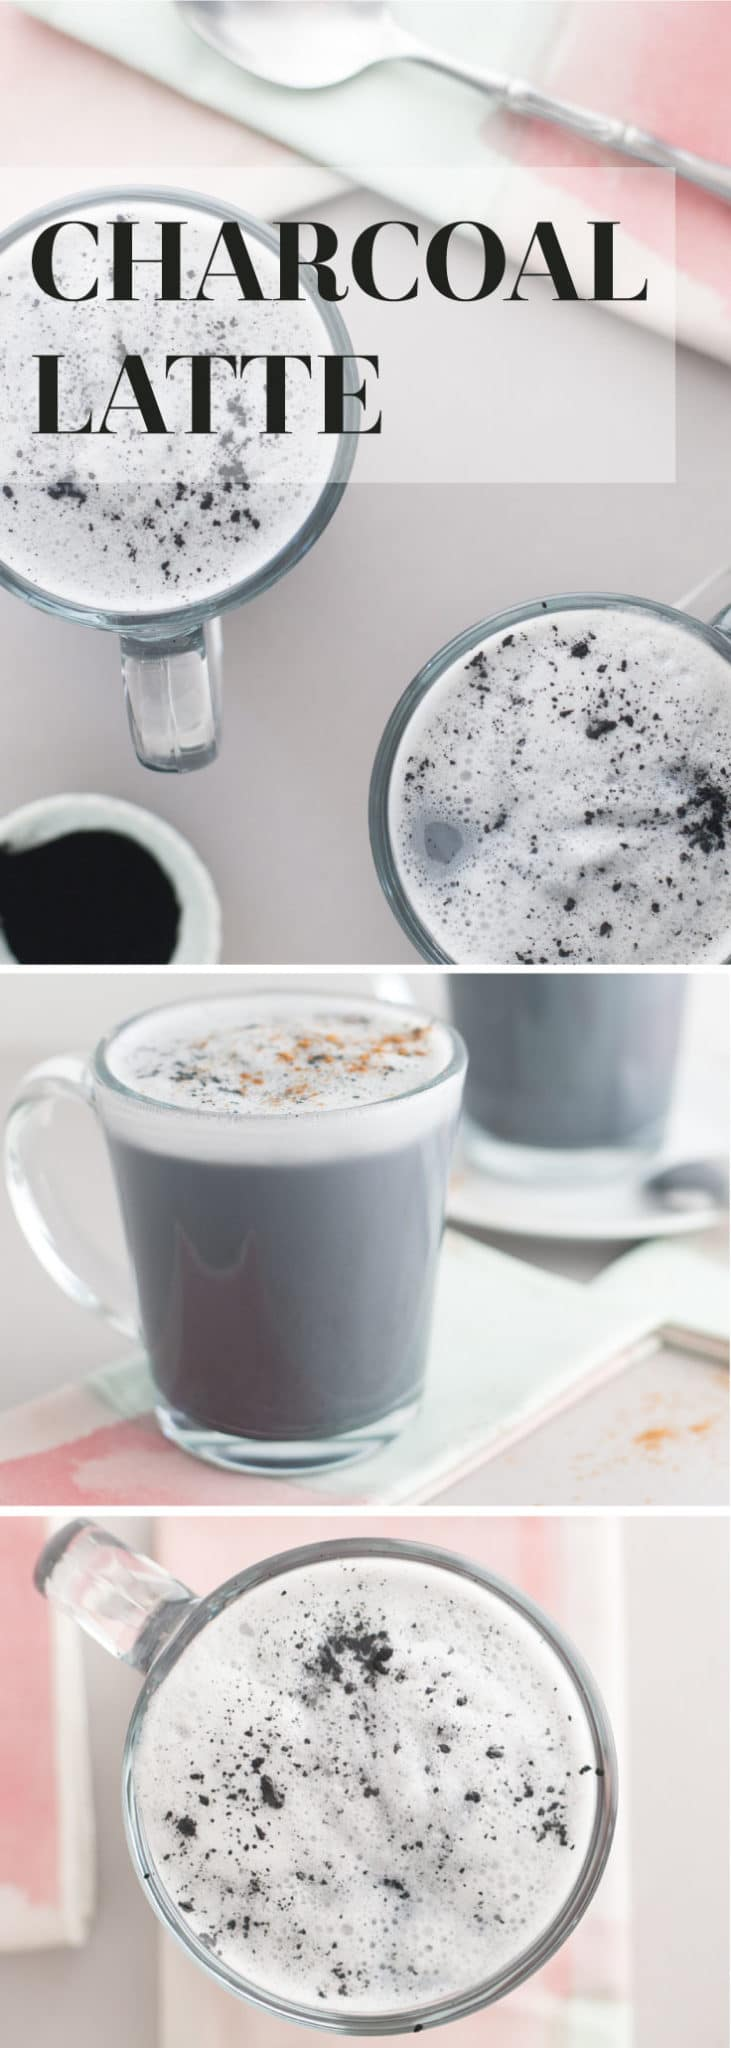 Activated Charcoal Latte -- This latte is all you need to detox and feel great. Activated charcoal has amazing benefits for the inside and out. - mindfulavocado